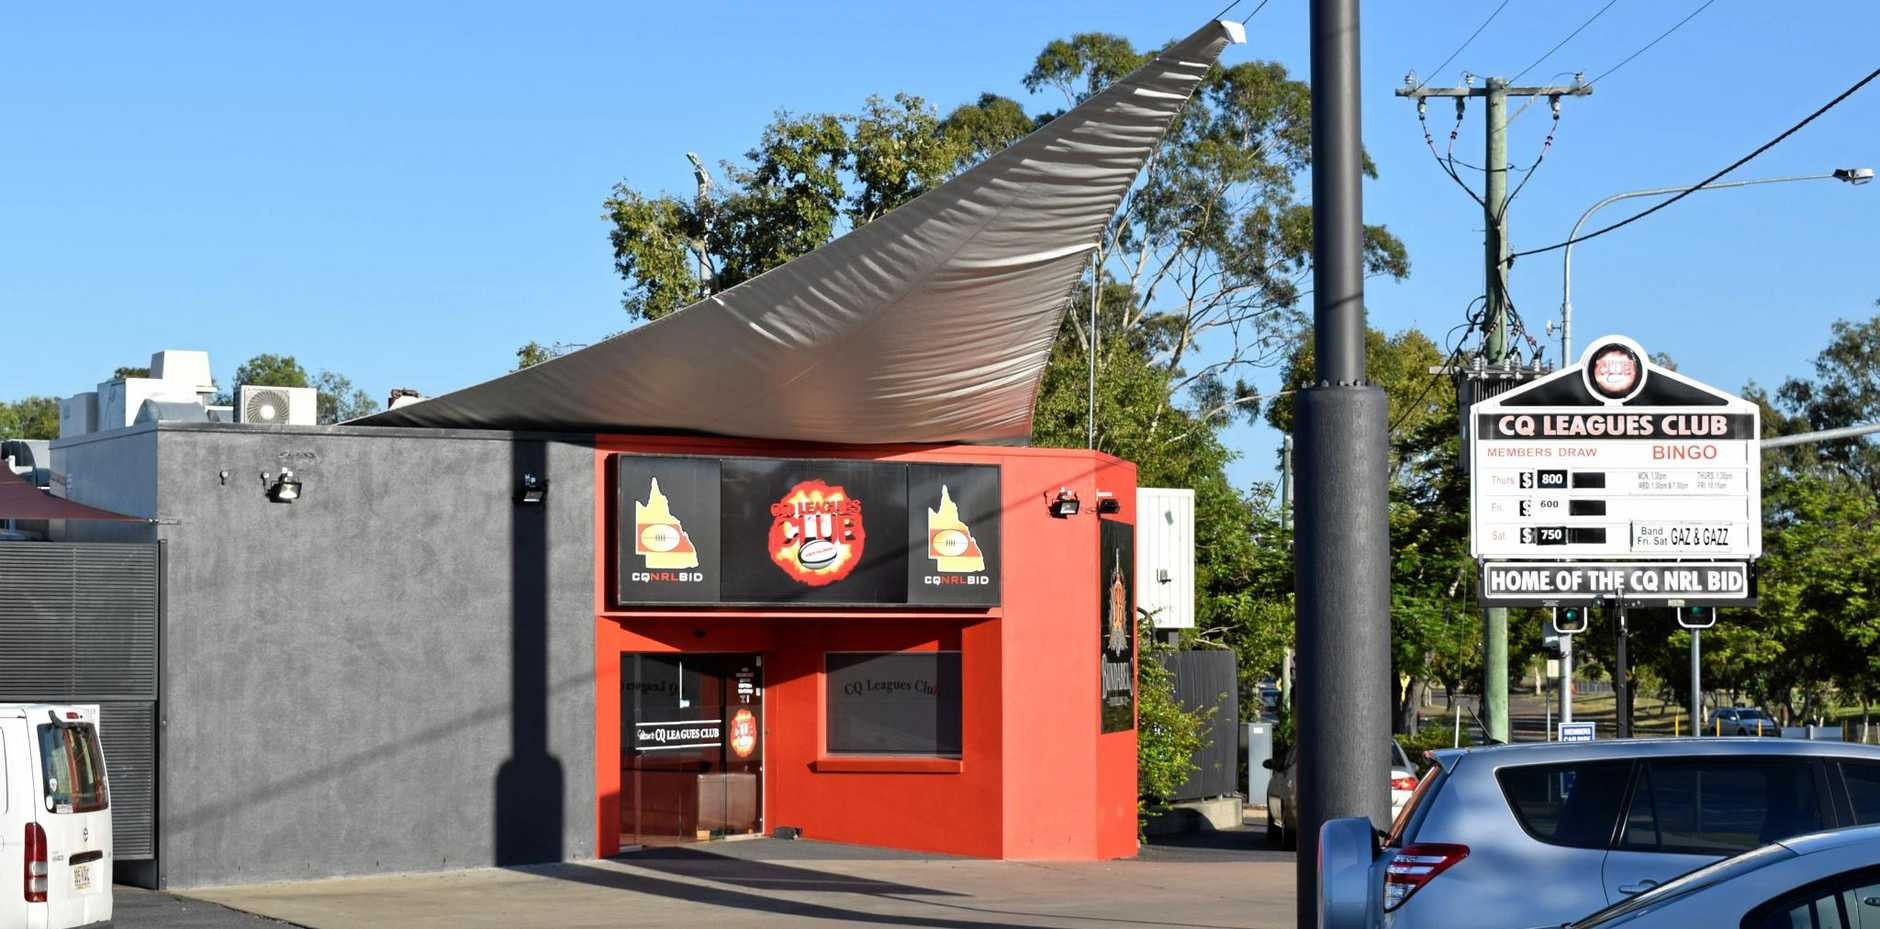 NO CLOSURE: CQ Leagues Club chairman Geoff Murphy says there are no plans to close the club, although members have been asked to support the venue through tough economic times.